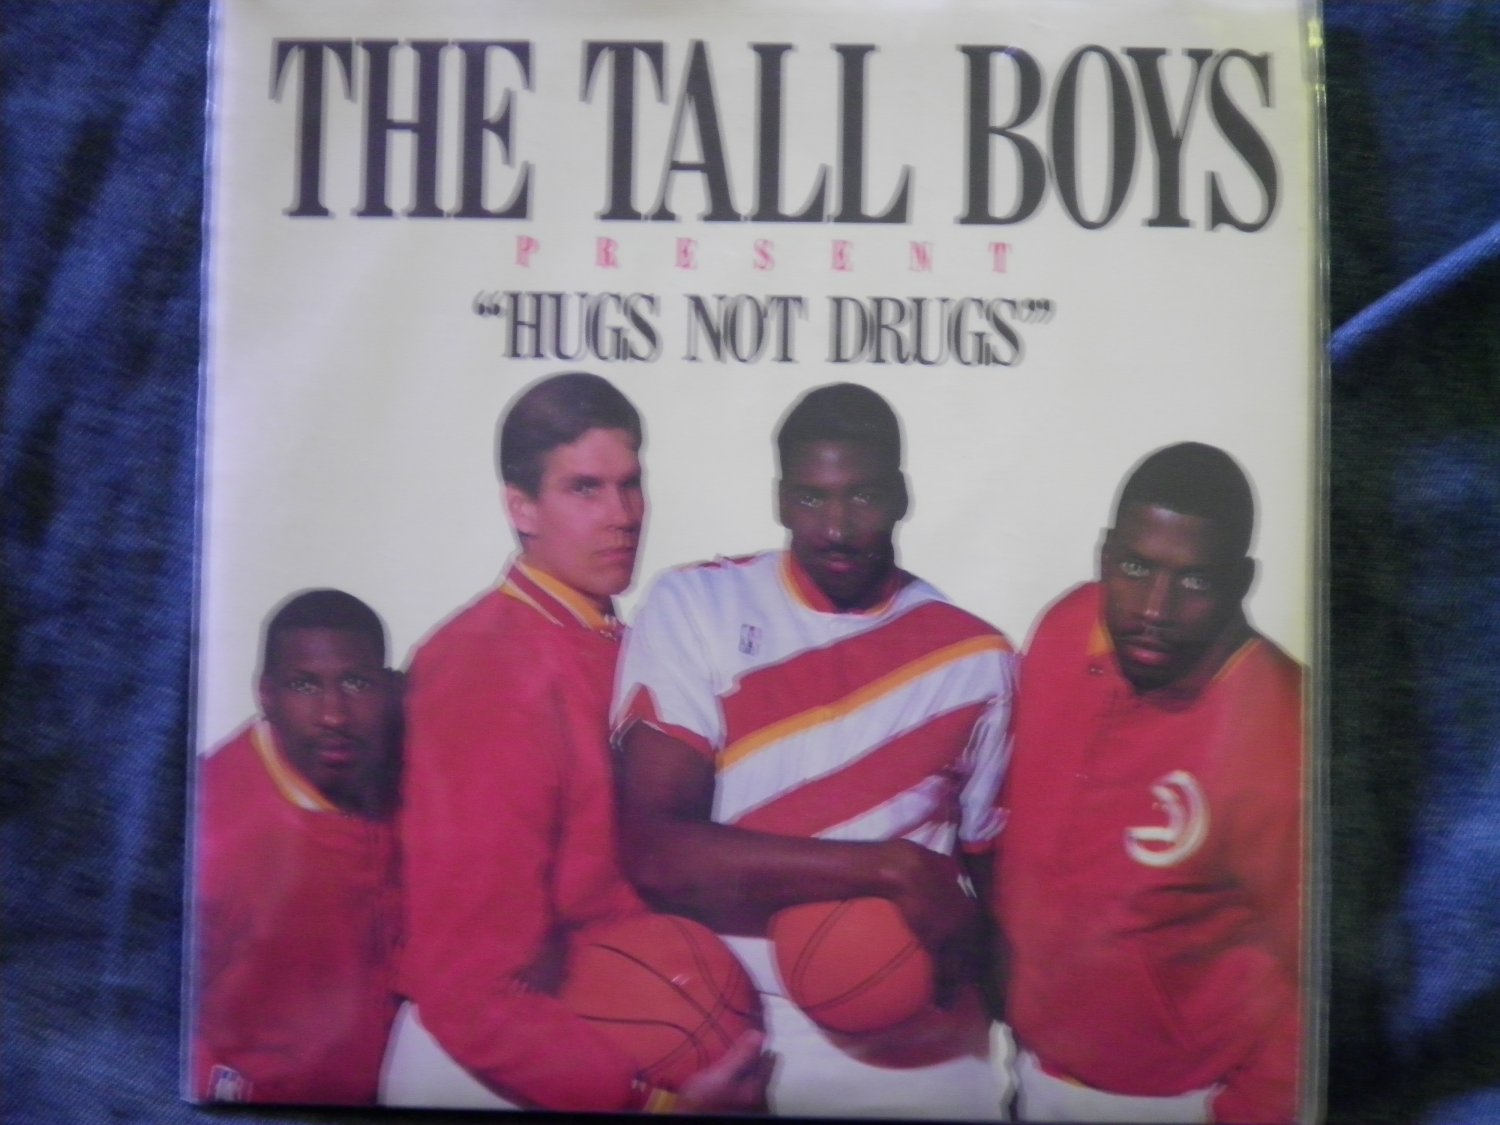 45 THE TALL BOYS Hugs Not Drugs atlanta hawks basketball promo 1988 vinyl record W/PICTURE SLEEVE